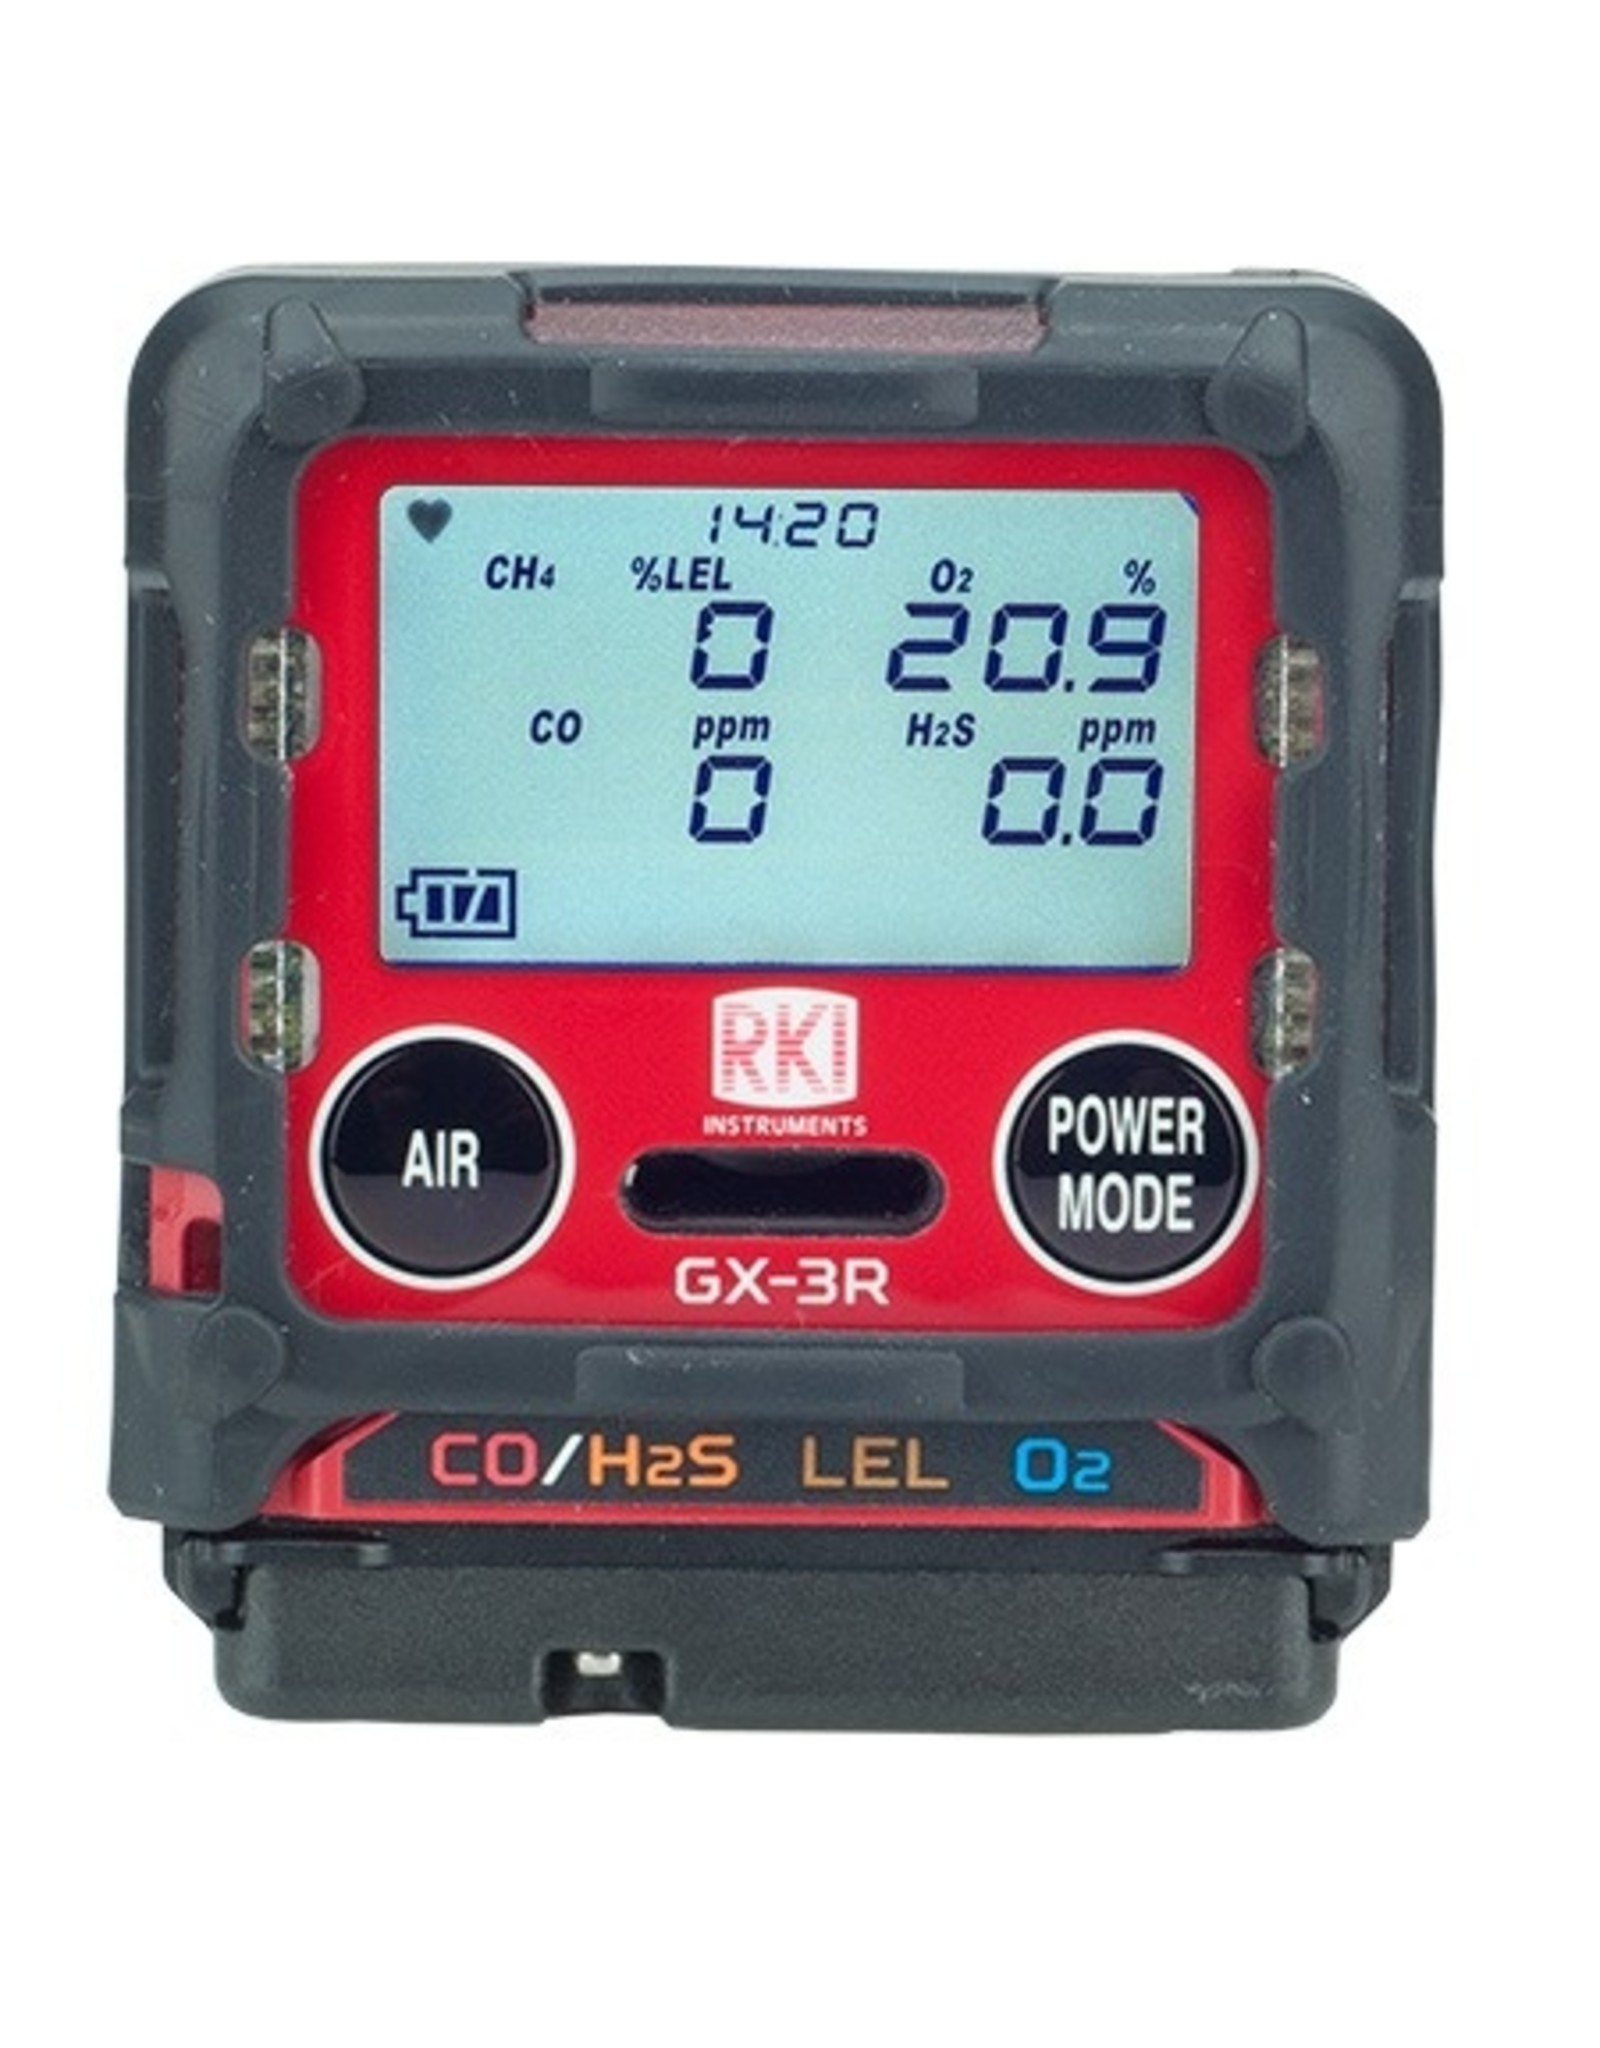 RKI Instruments GX-3R Pro Personal Gas Detector - Confined Space 4 Gas Monitor